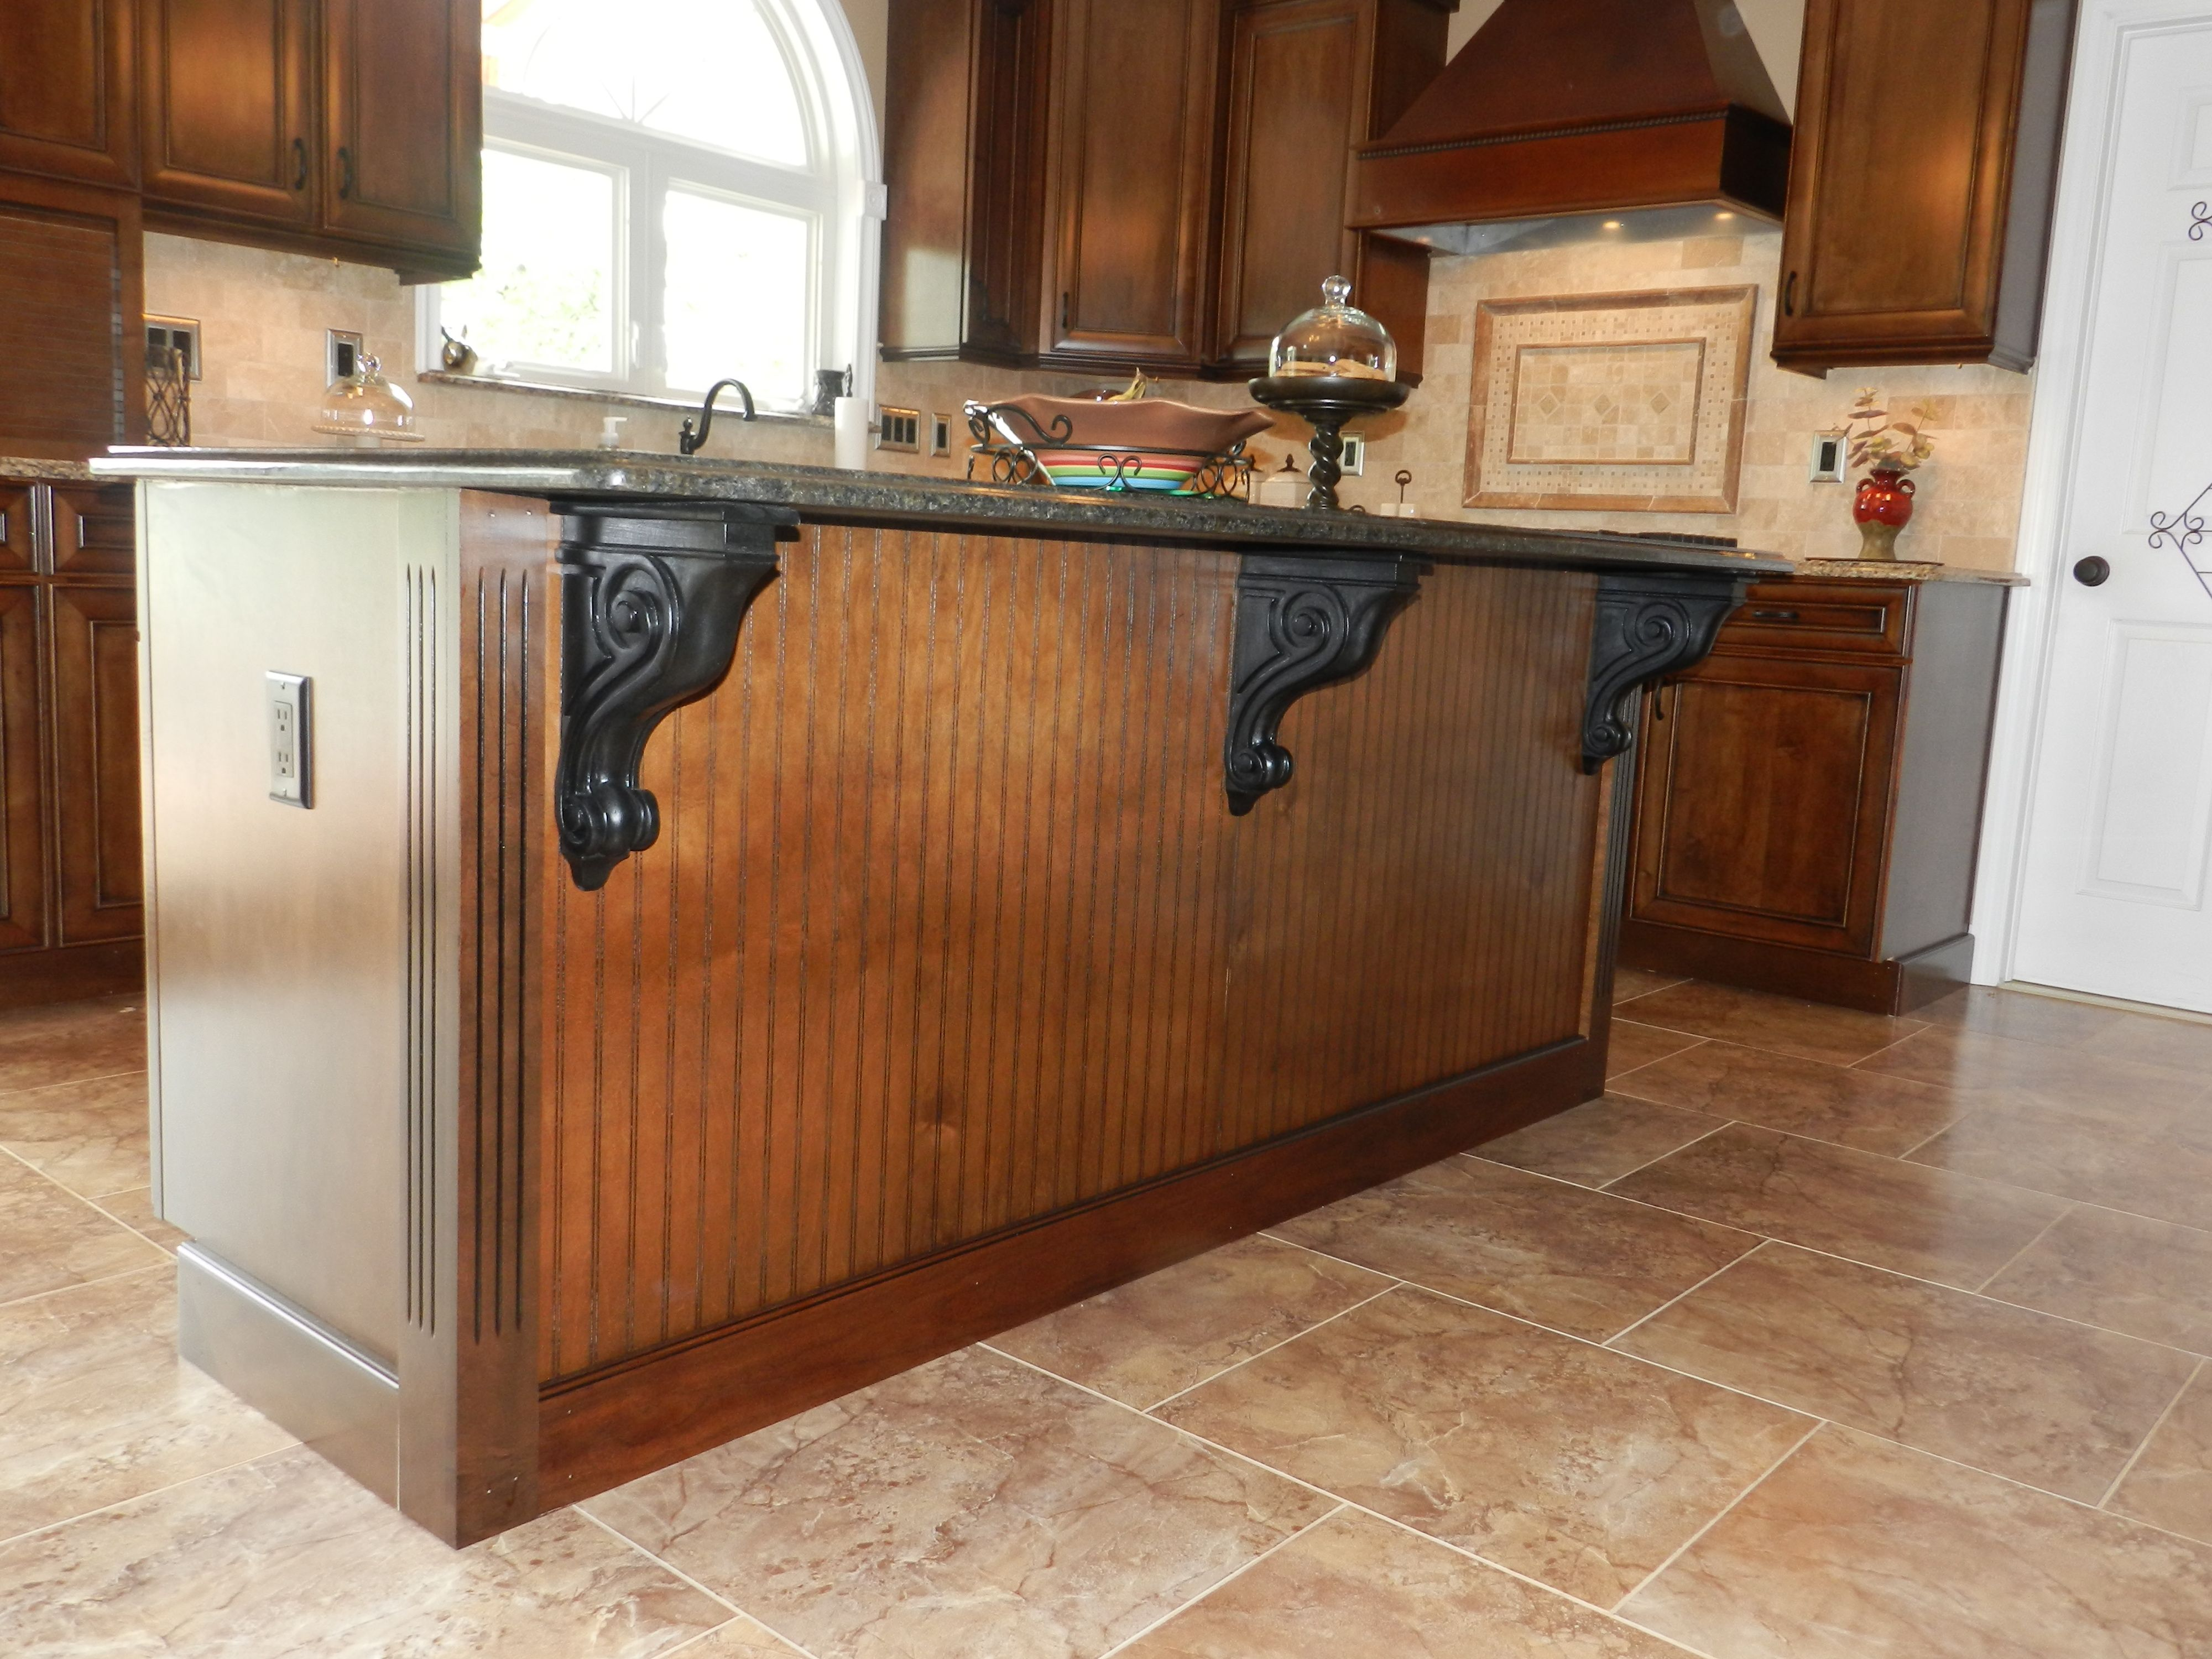 Kitchen Island with corbels & beadboard My work